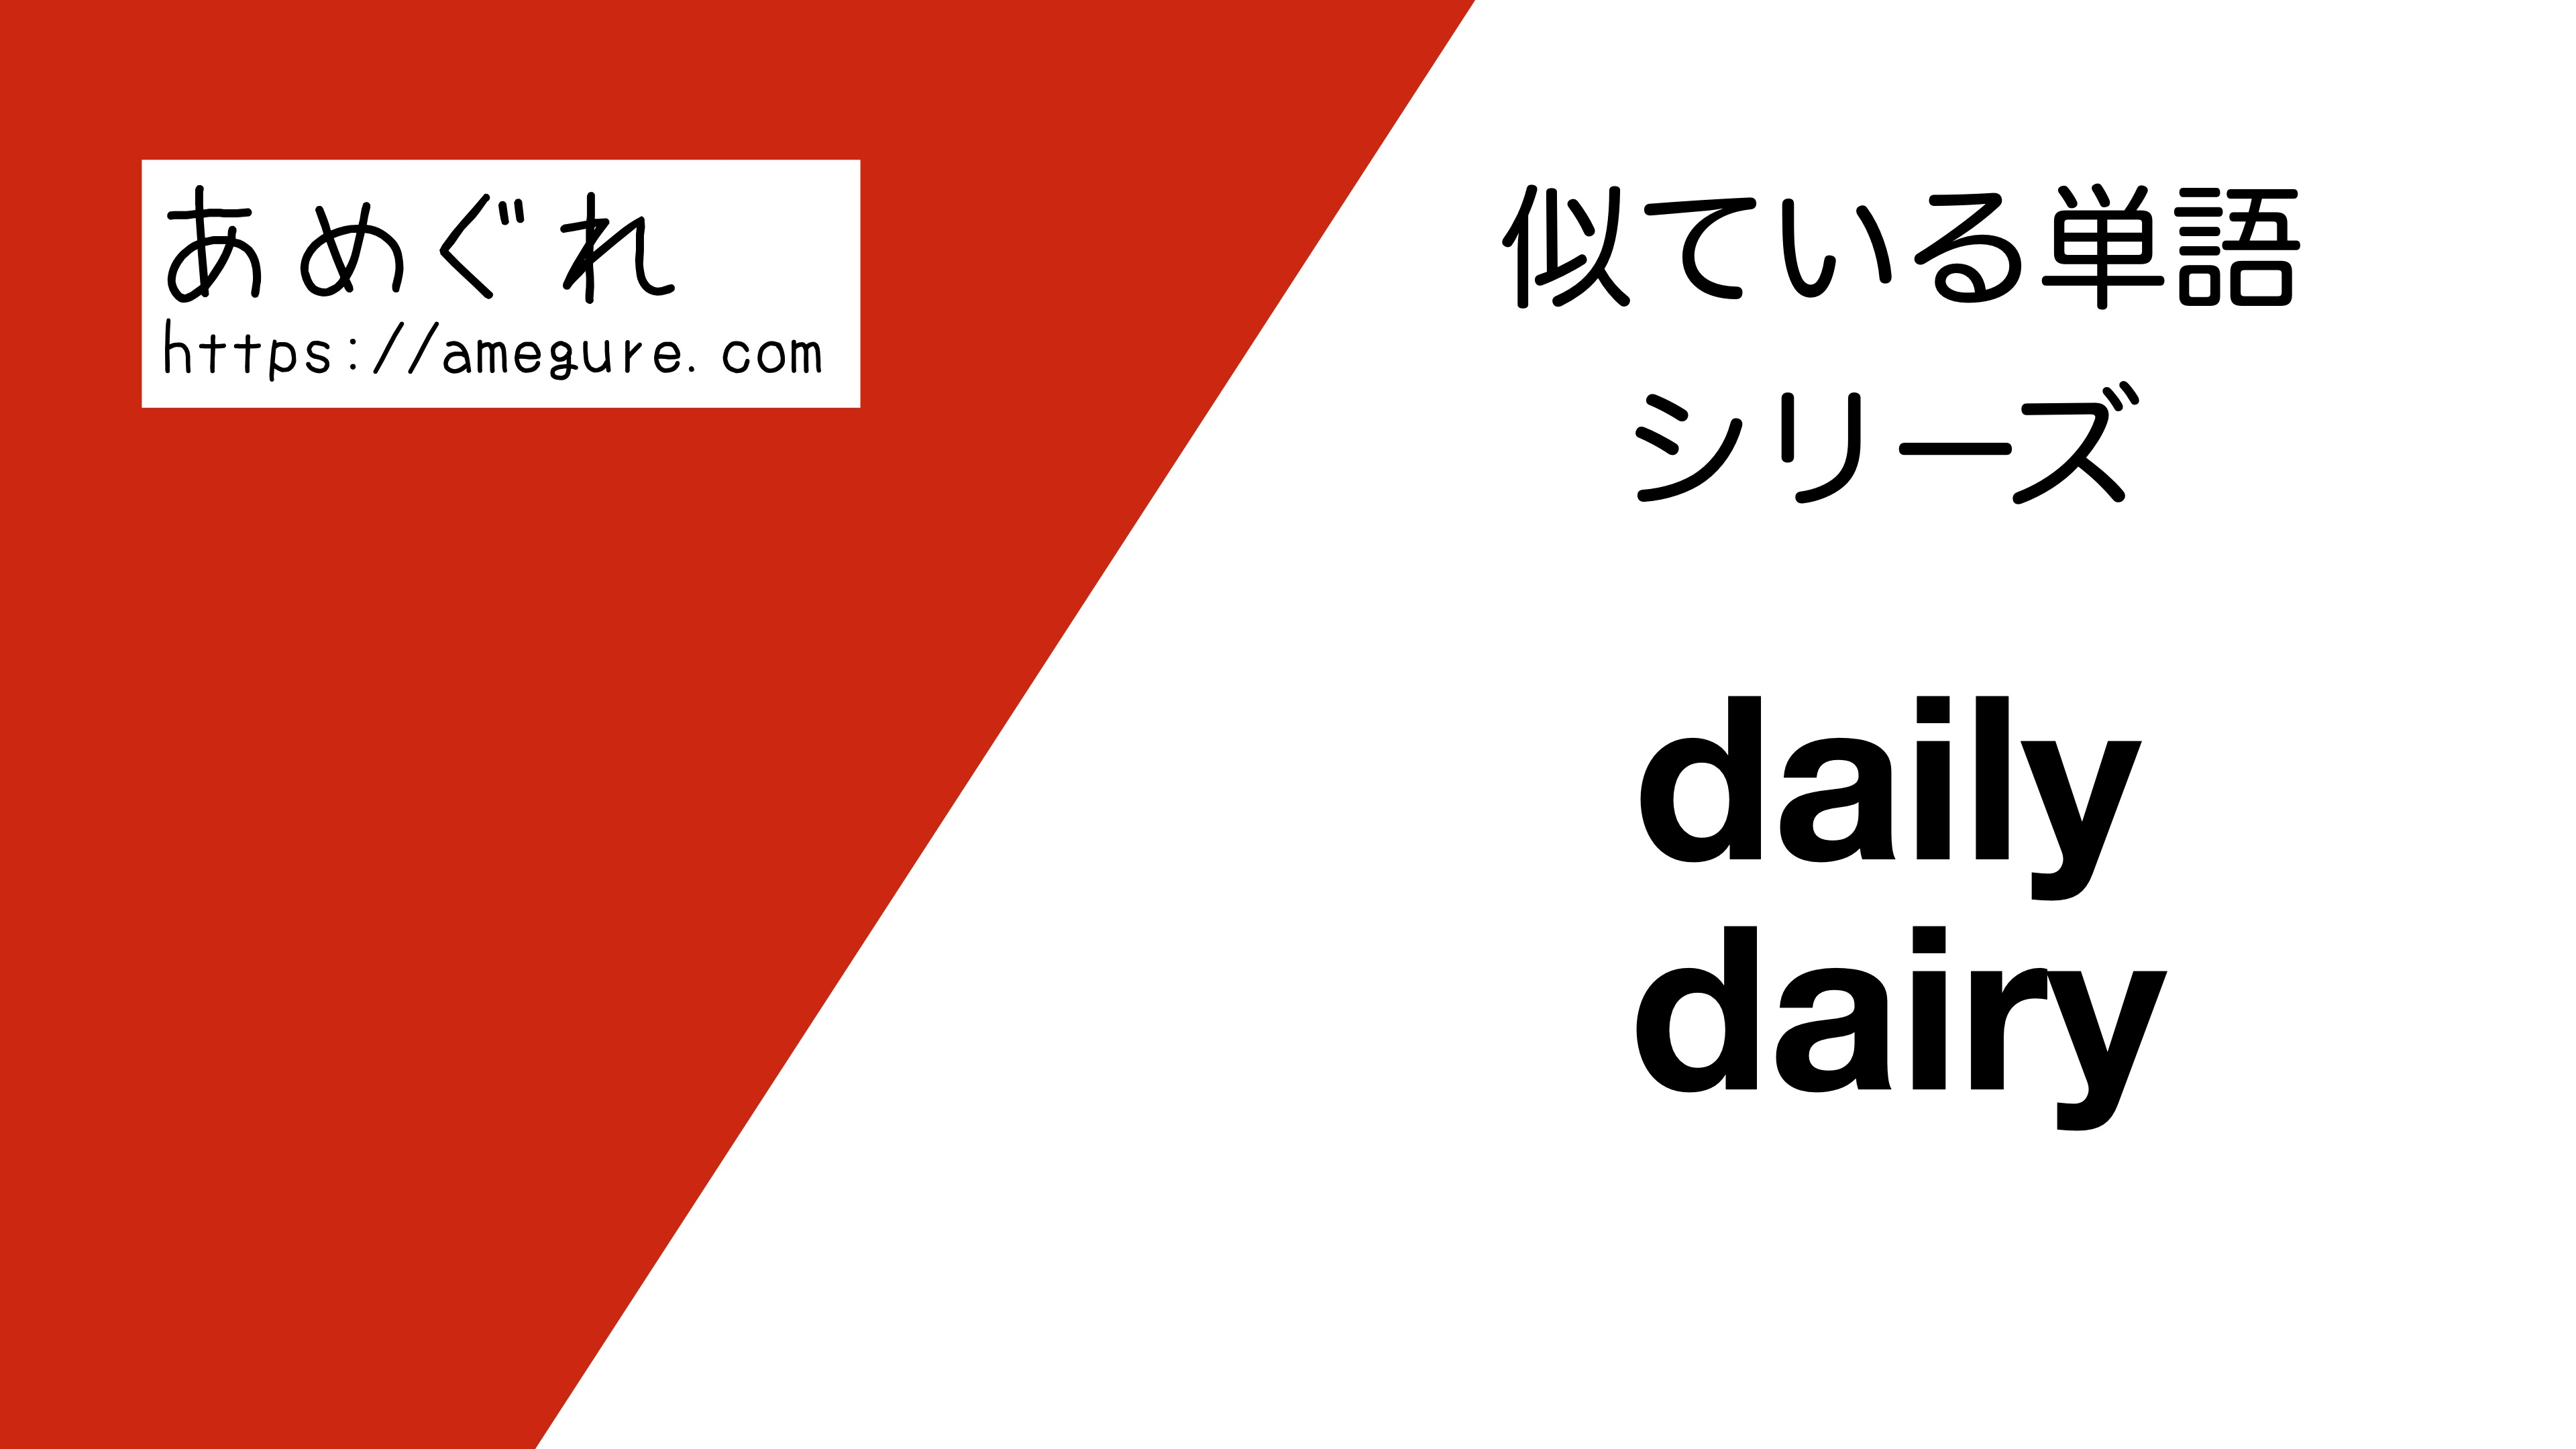 daily-dairy違い